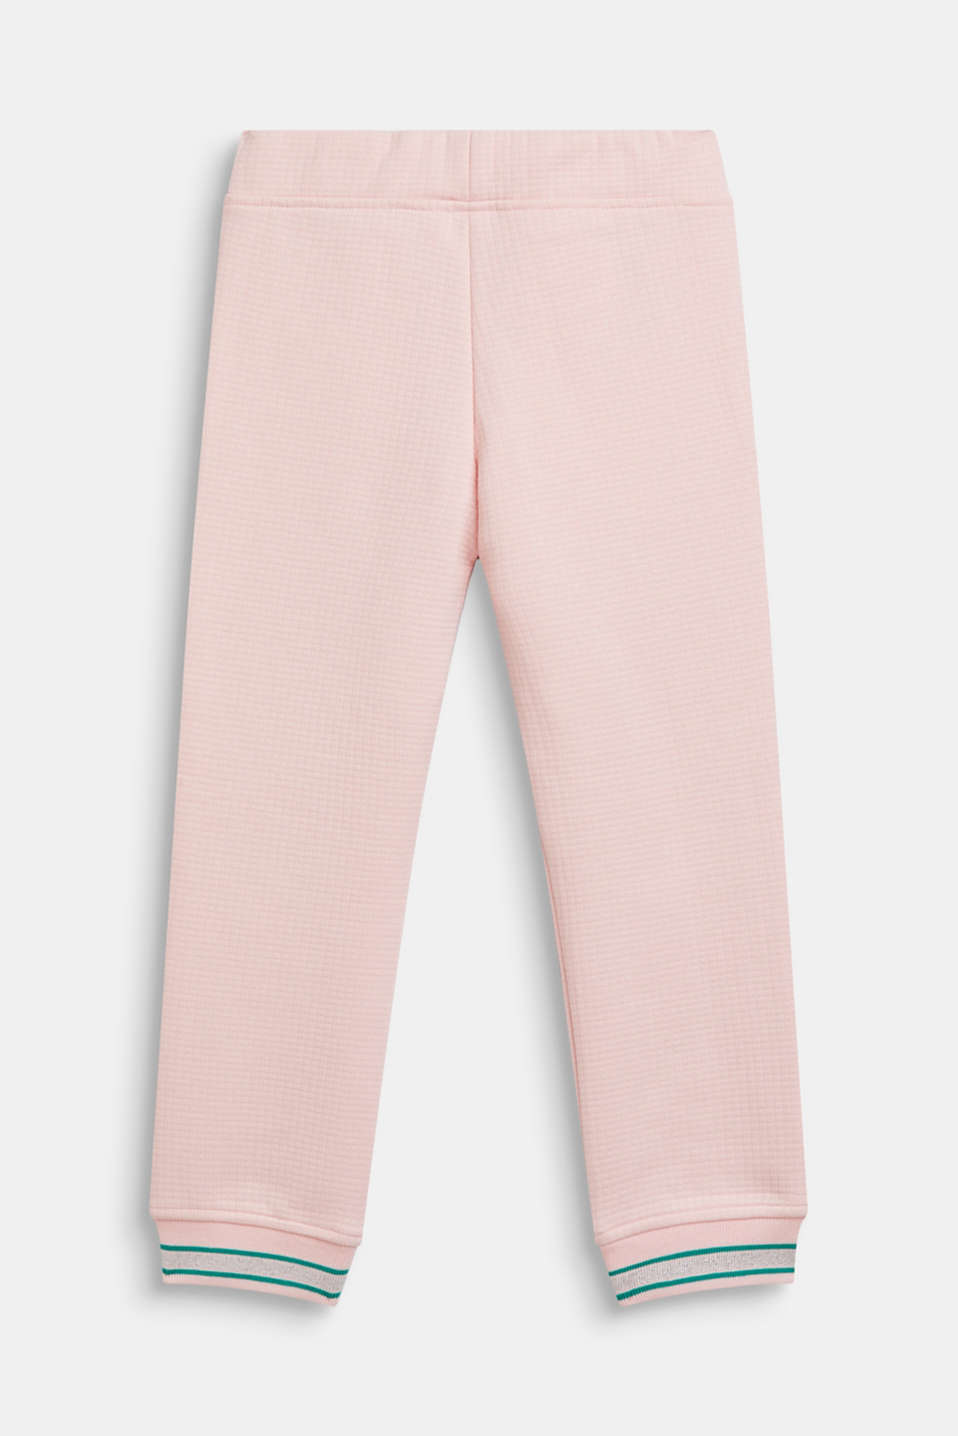 Quilted sweatshirt fabric trousers with glittering hem borders, TINTED ROSE, detail image number 1